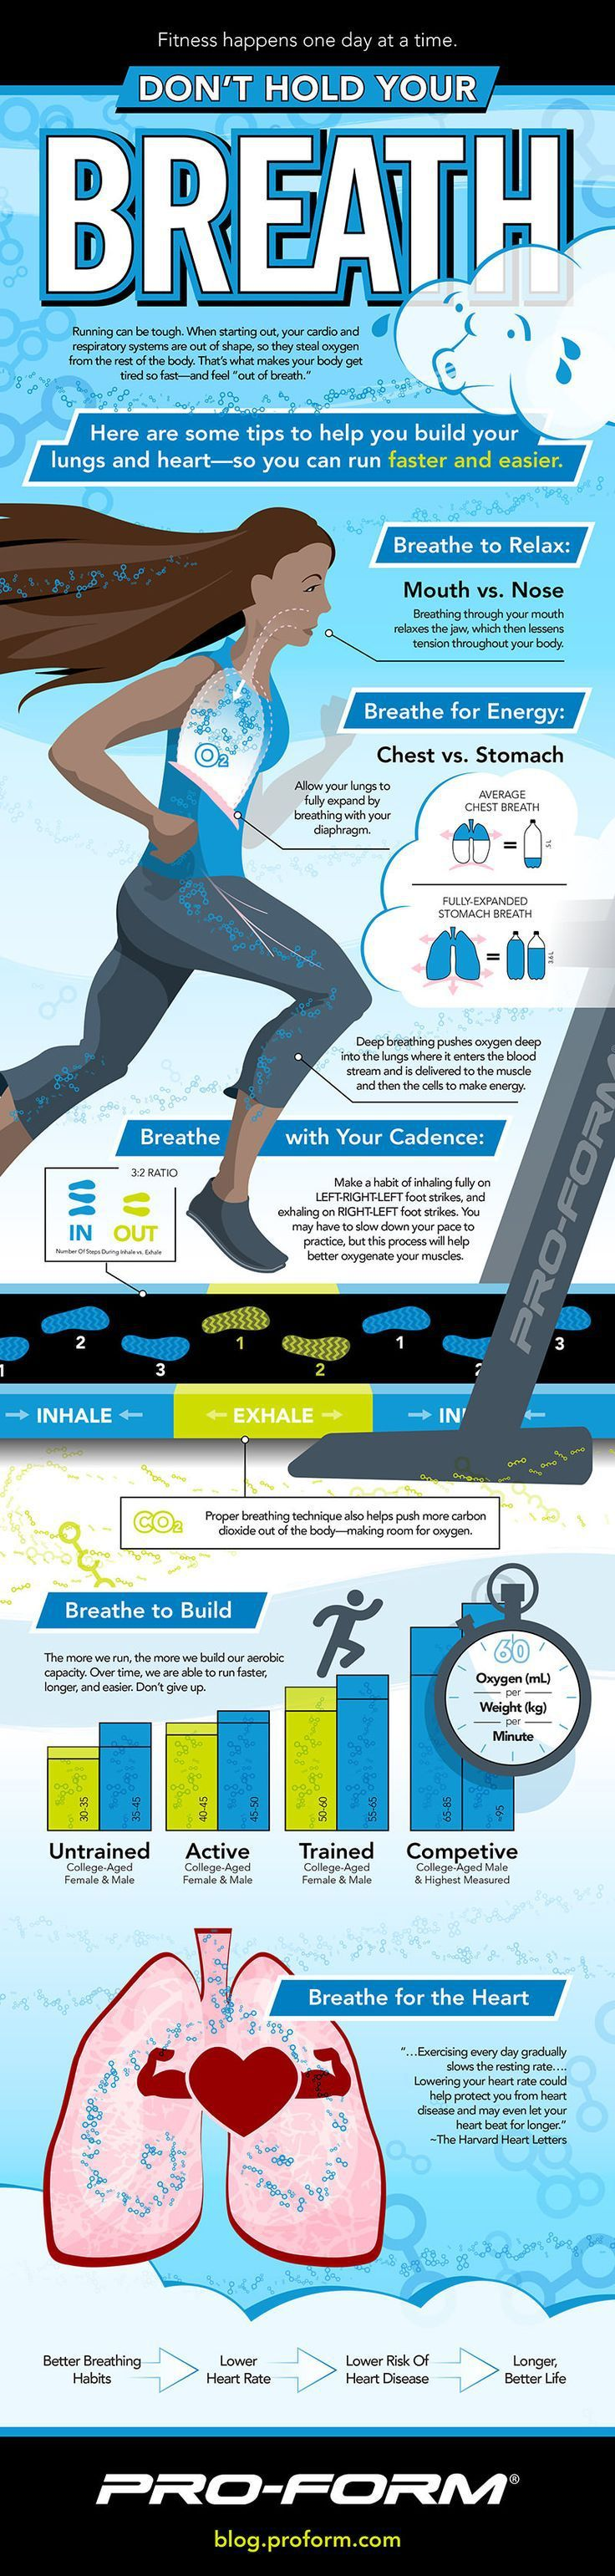 Don't Hold Your Breath #Infographic - tips to help your run #Cardio